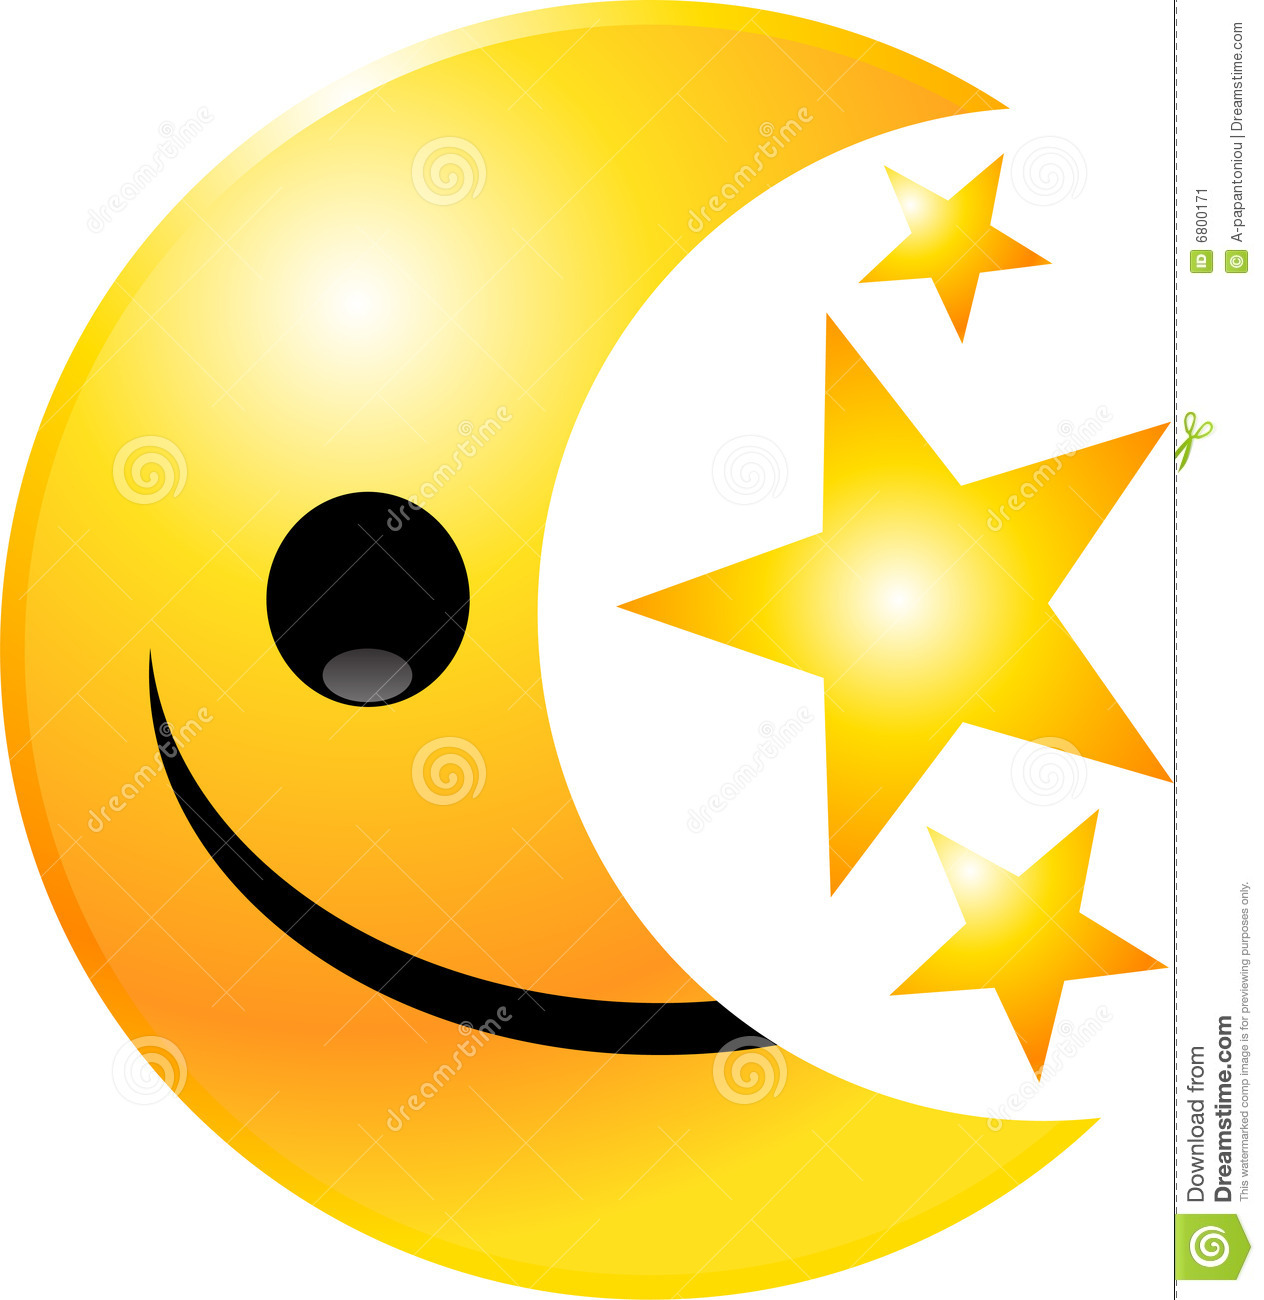 1264x1300 Smiley Face Wink Thumbs Up Clipart Panda